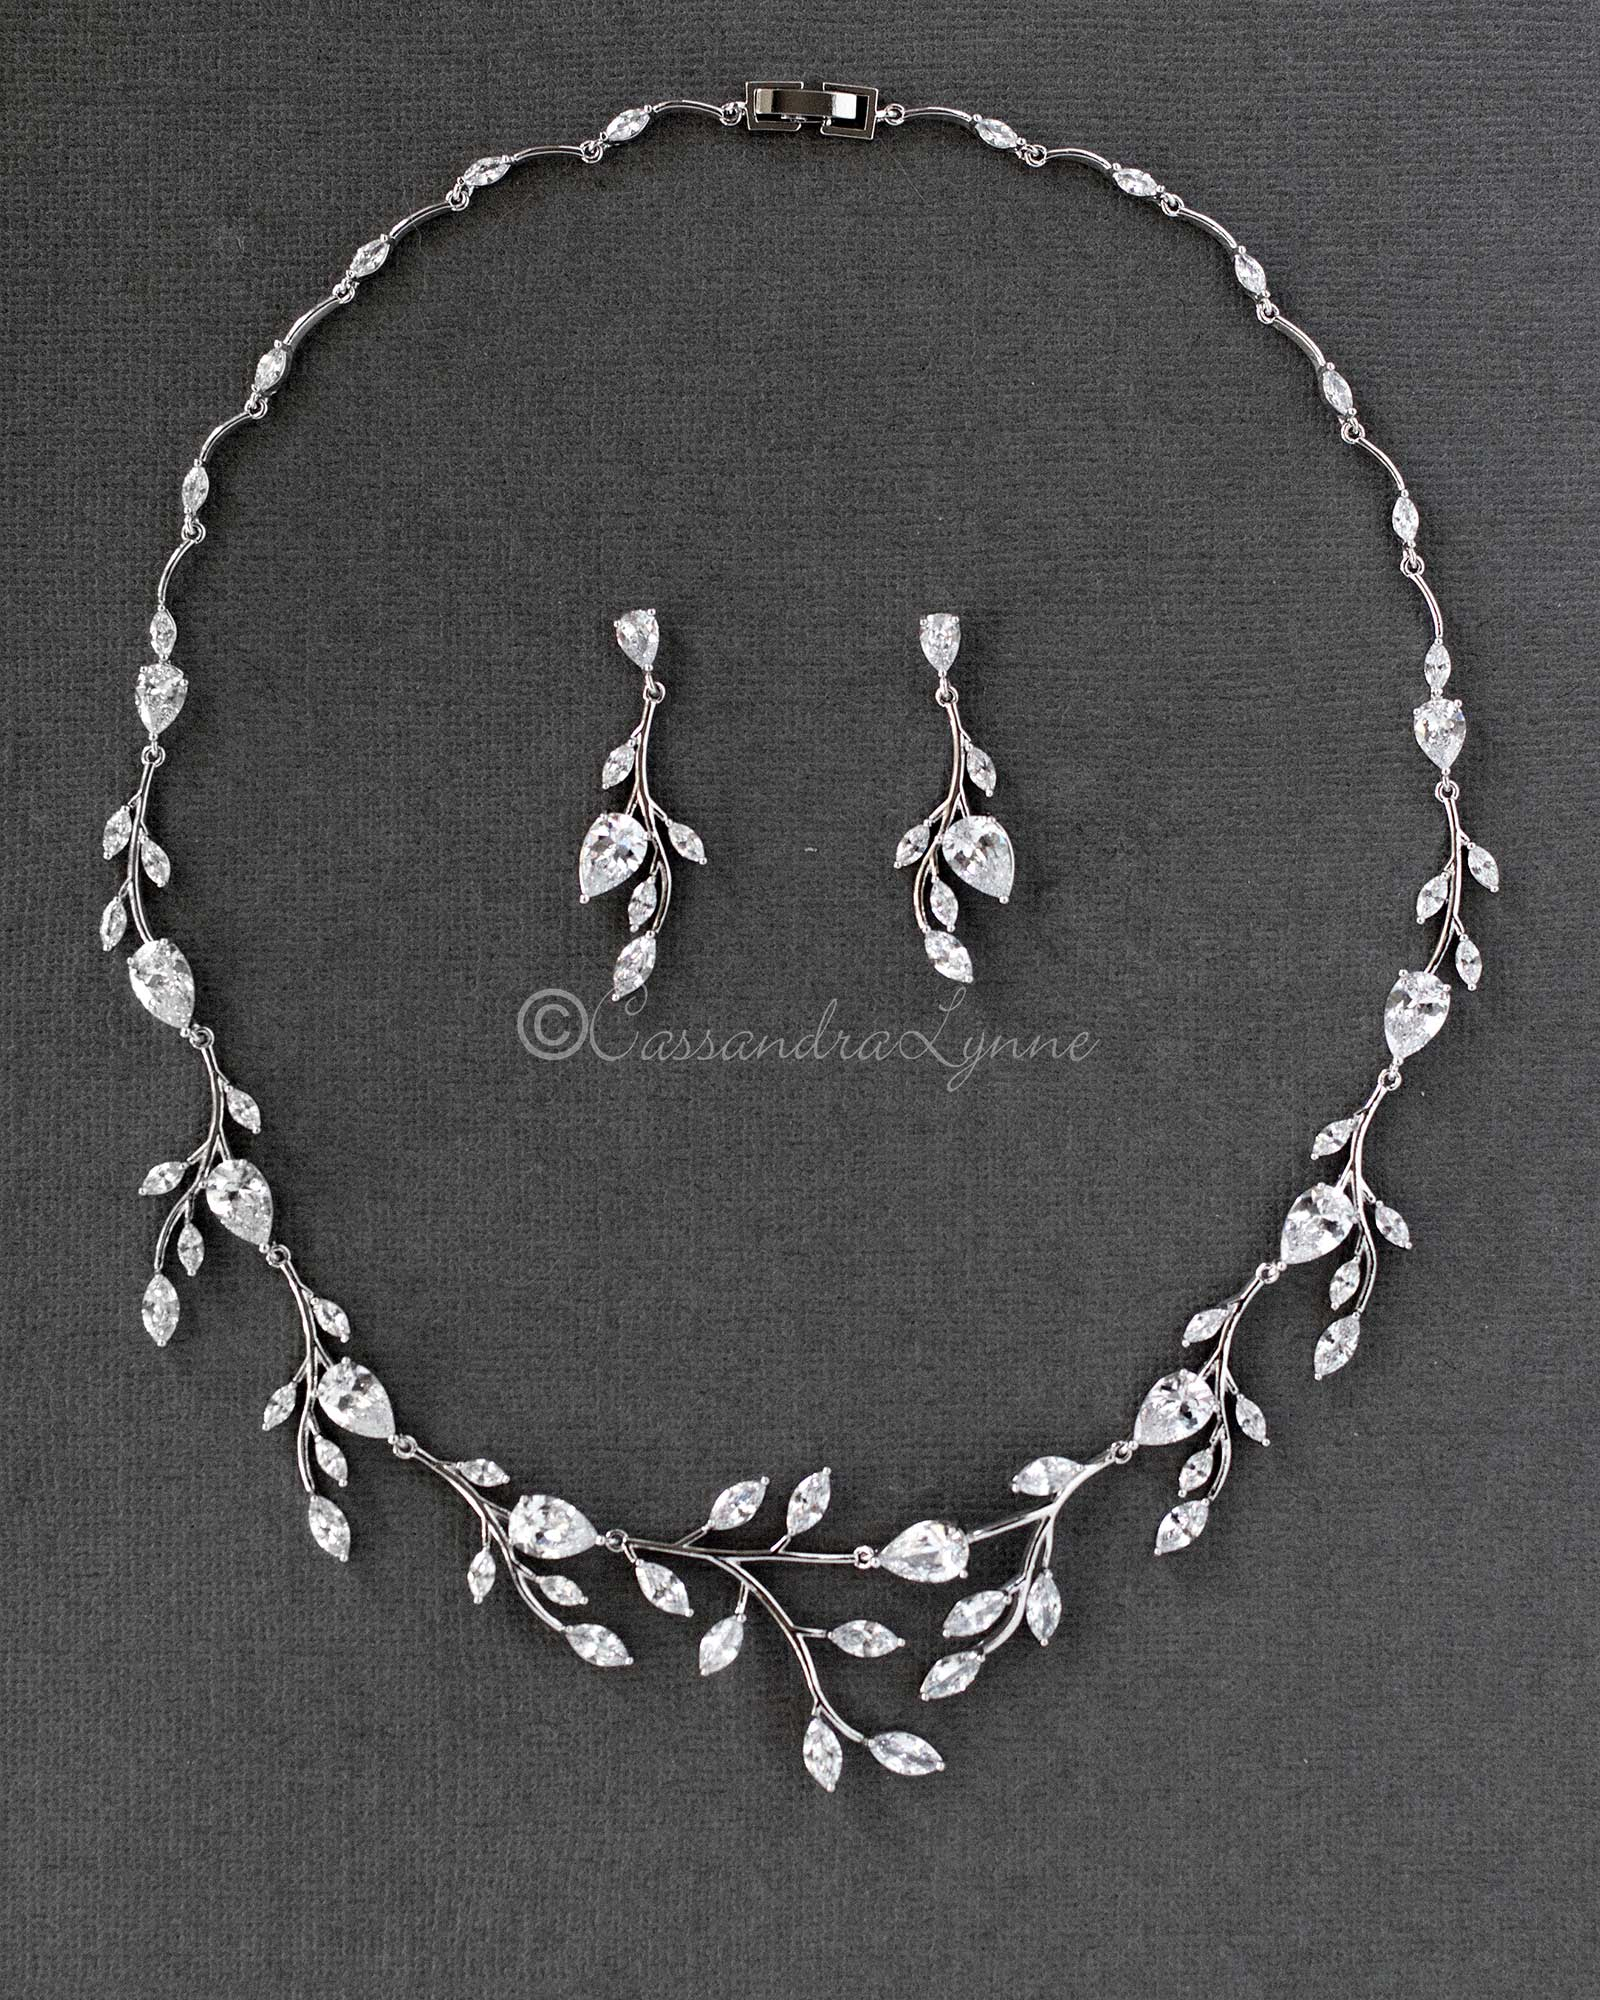 Wedding Necklace and Earrings of Marquise CZ Vines